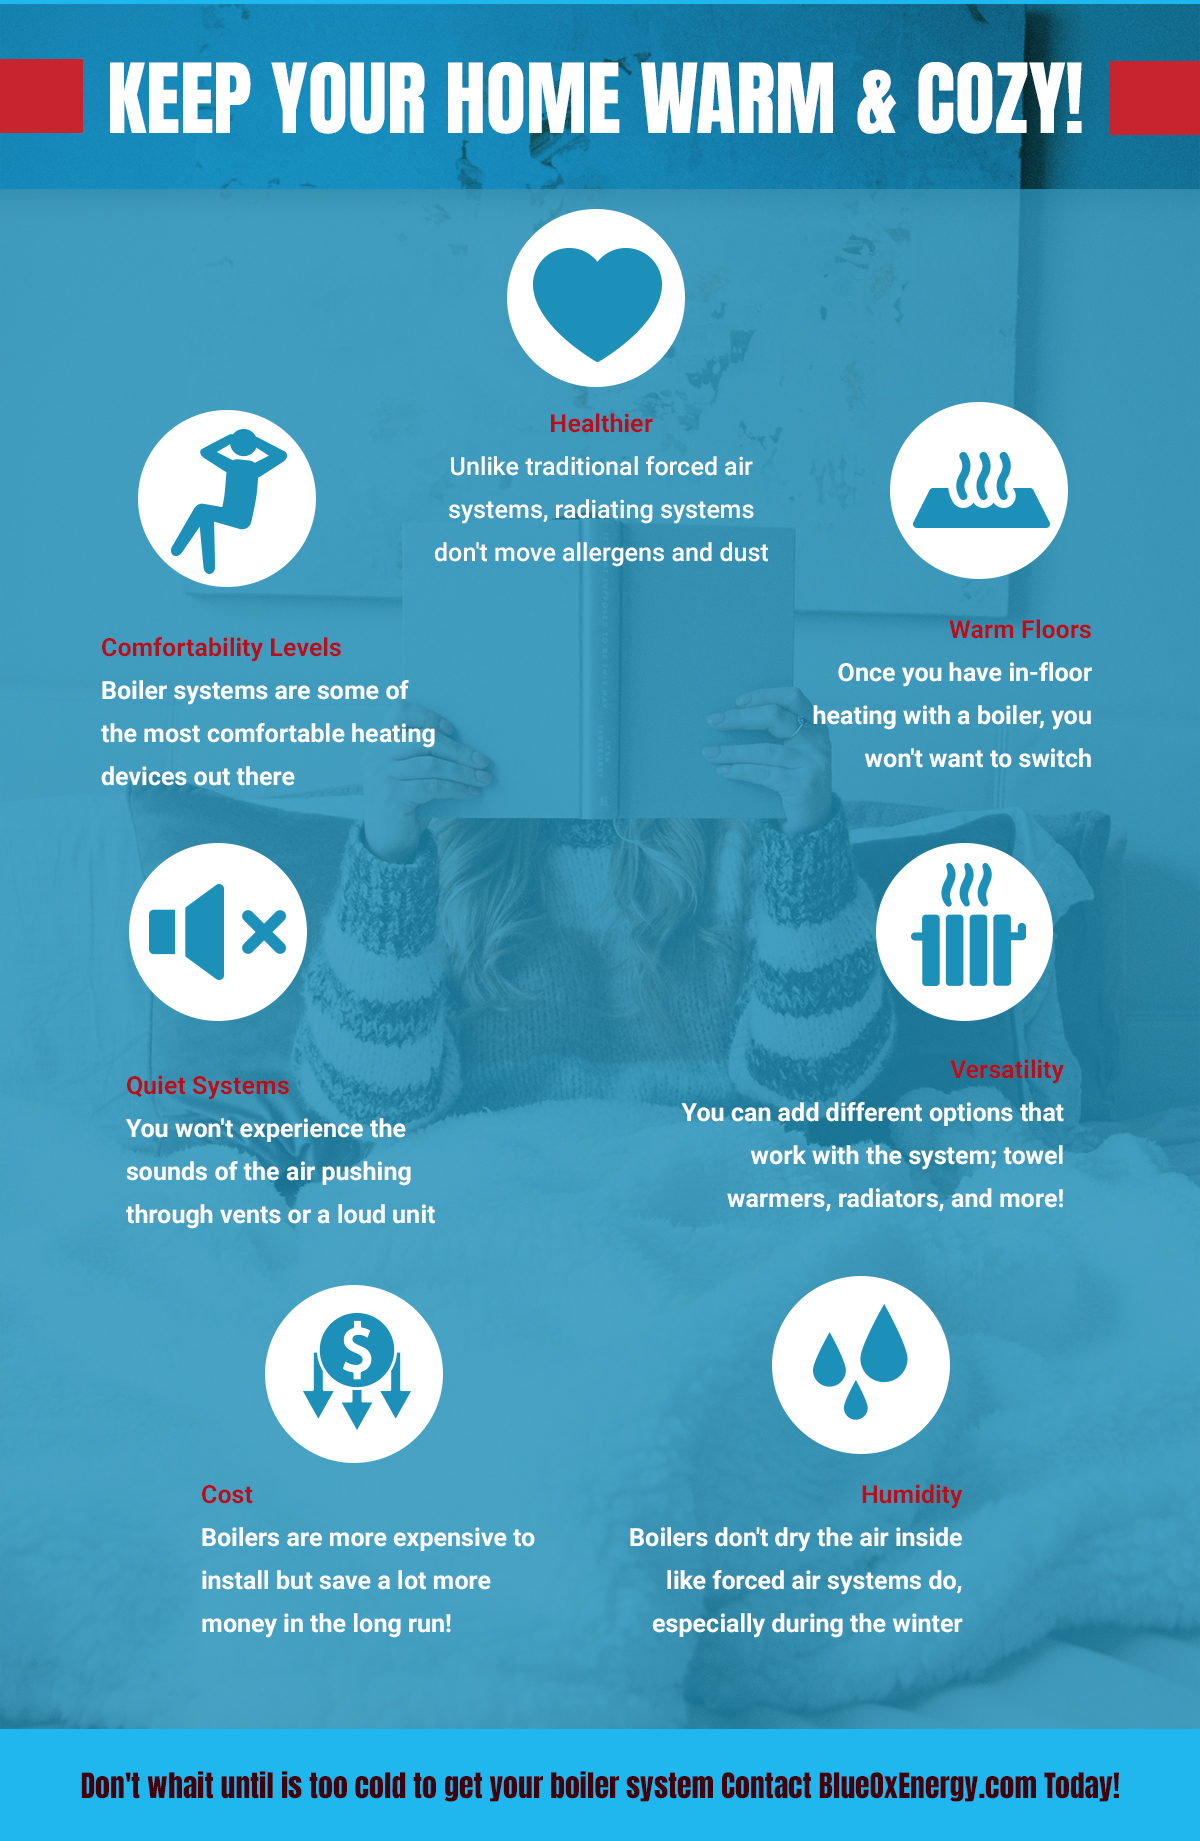 Benefits of having a boiler from BlueOx Energy